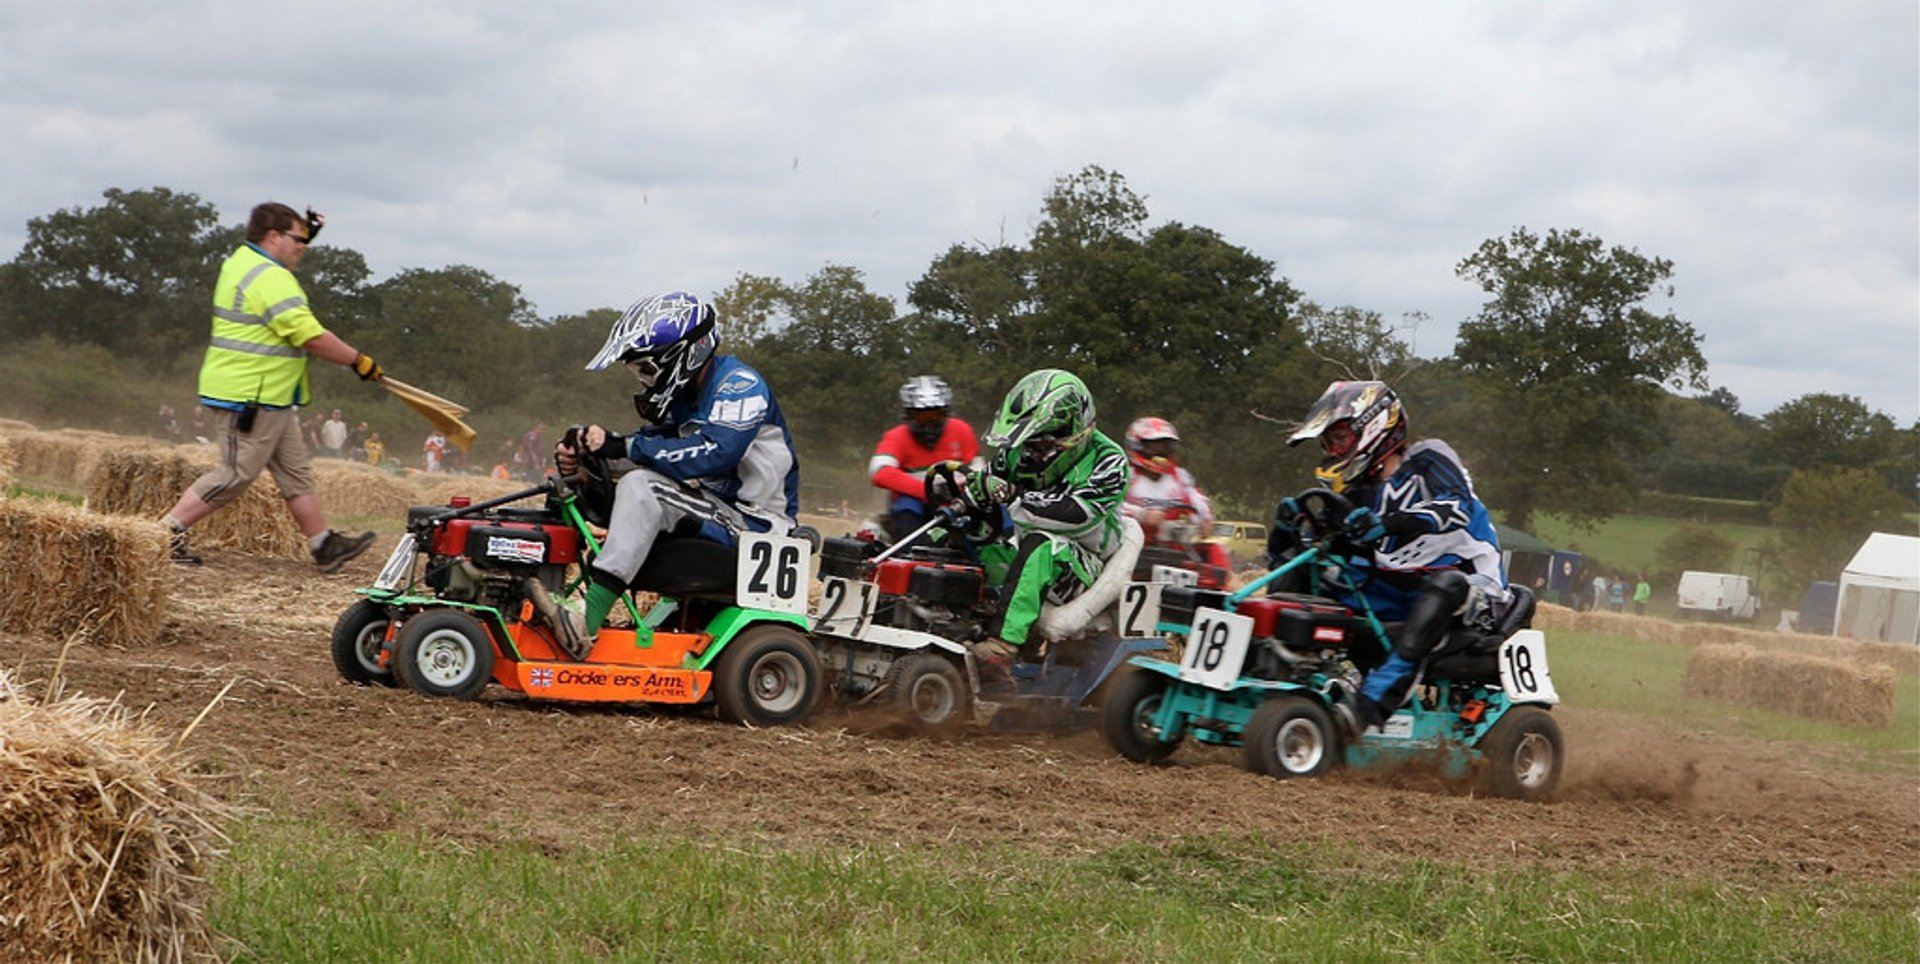 Lawn Mower Racing World Championships in England 2019 - Best Time